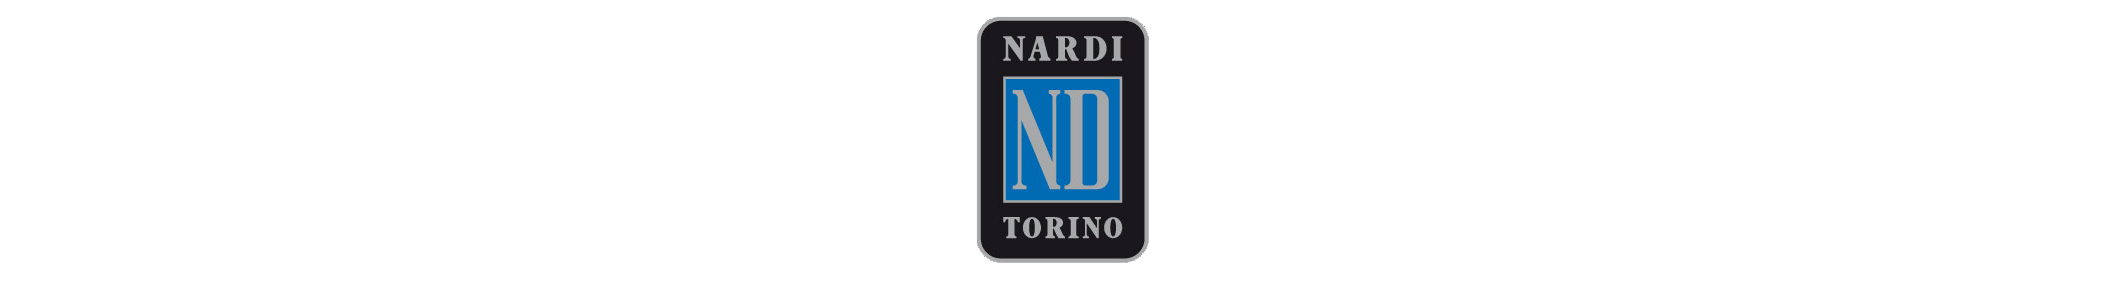 nardi copy.jpg